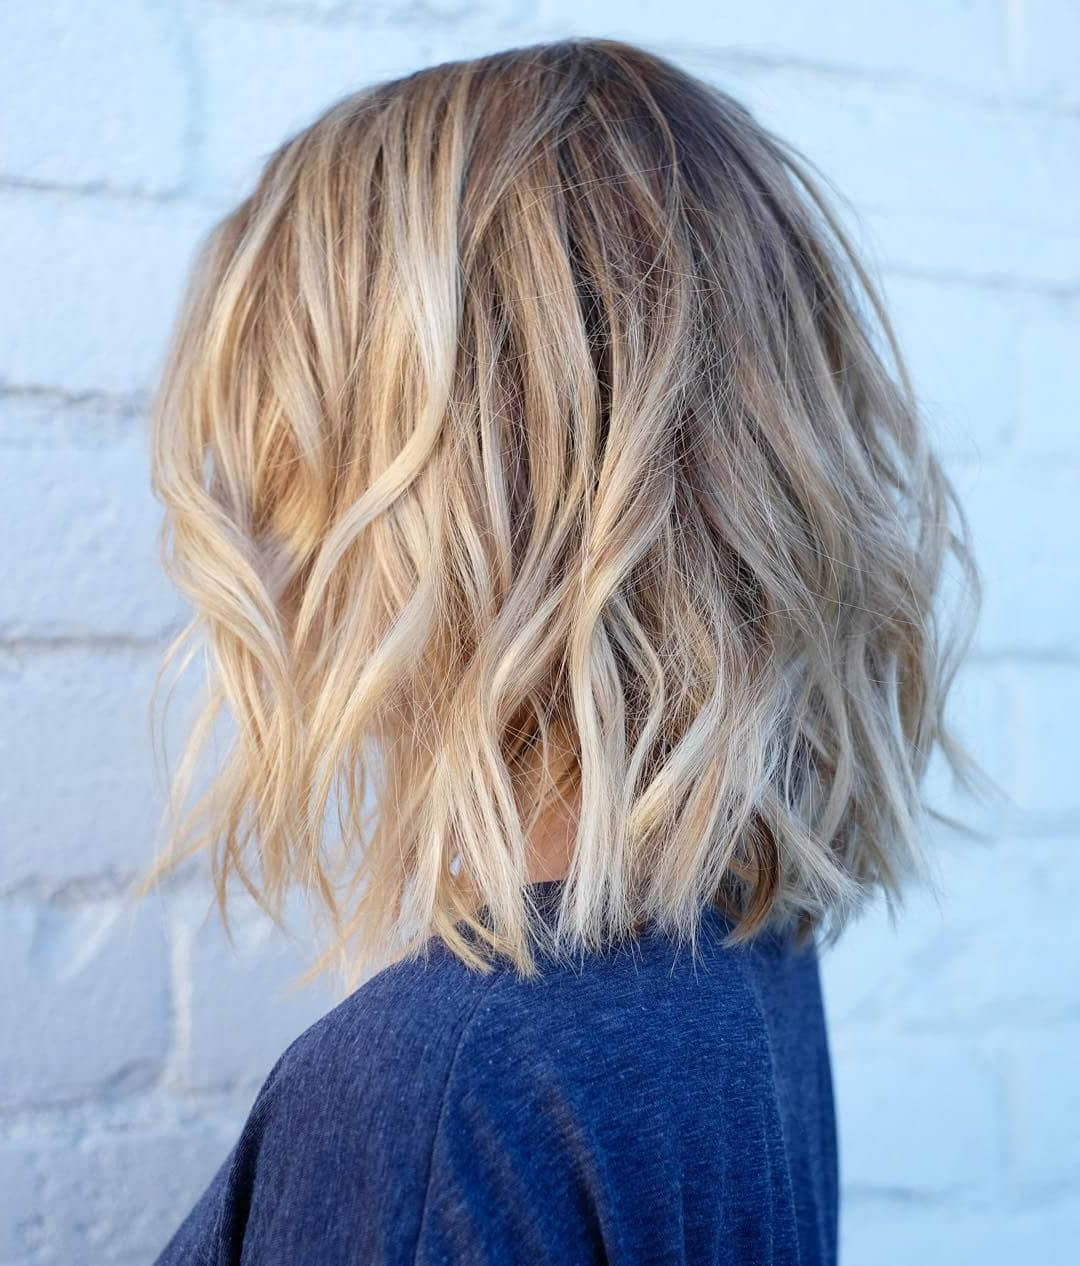 50 Fresh Short Blonde Hair Ideas To Update Your Style In 2018 Throughout Dirty Blonde Pixie Hairstyles With Bright Highlights (View 13 of 20)